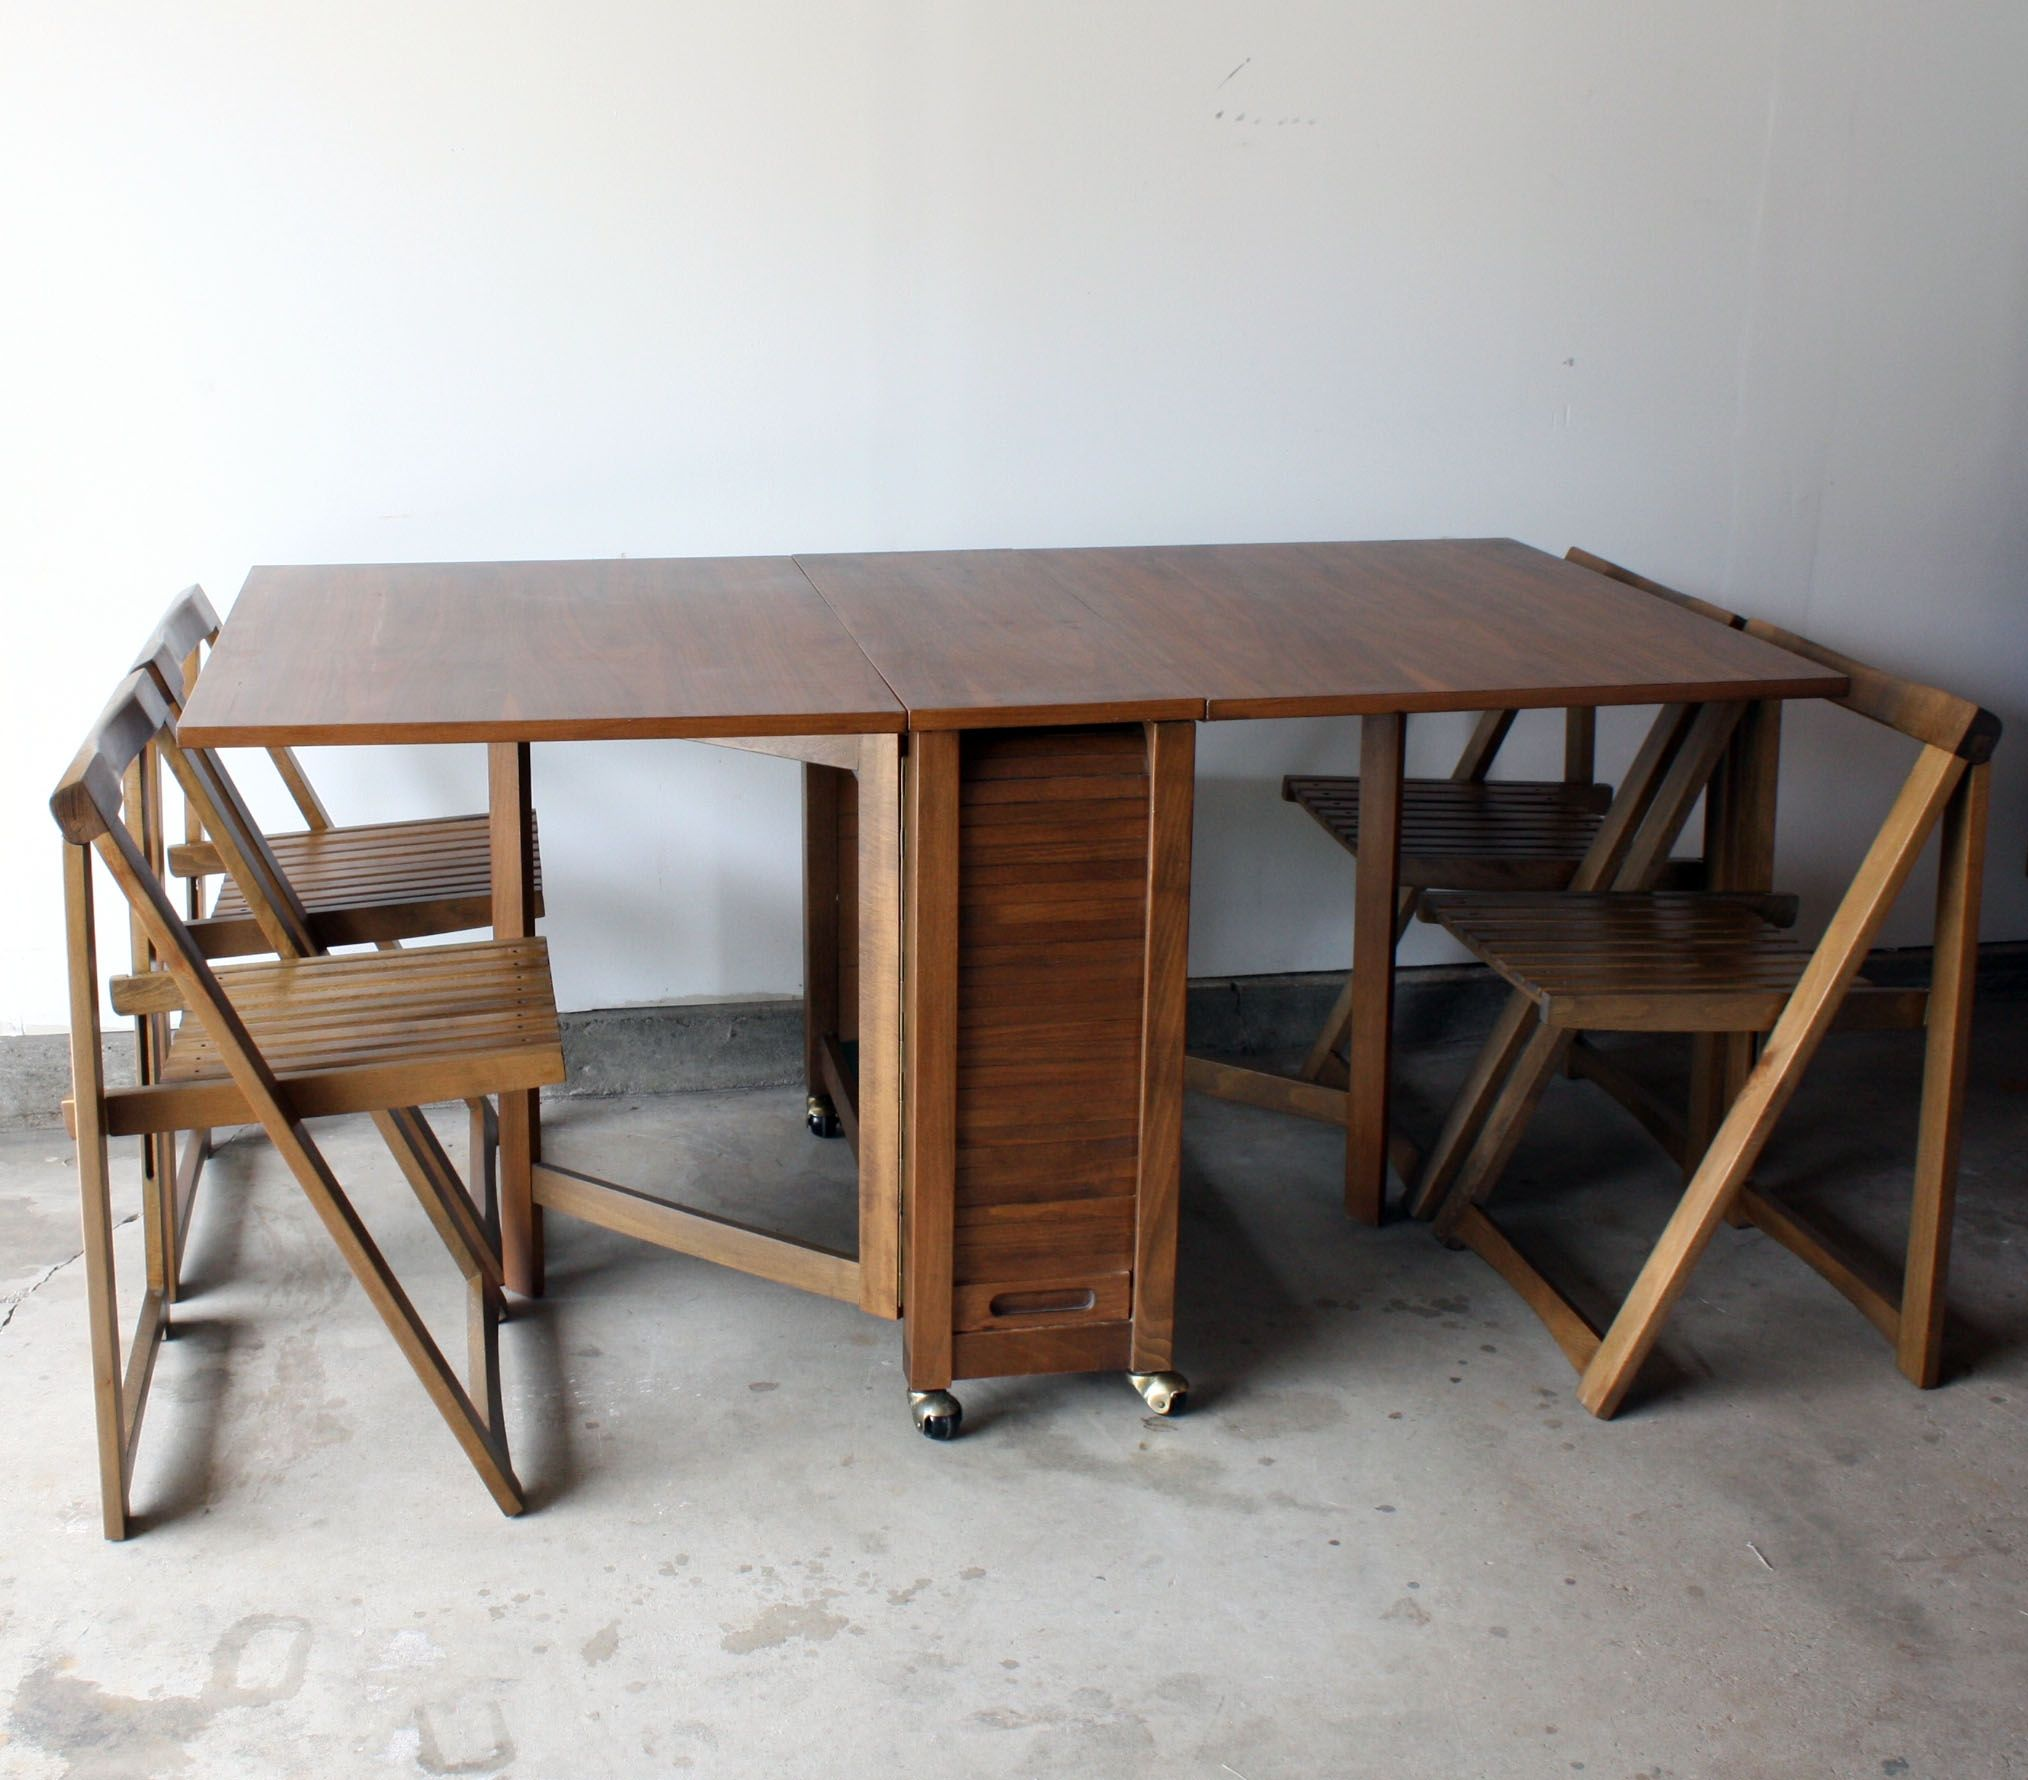 Table With Folding Chairs Inside Drop Leaf Table Drop Leaf Dining Table Leaf Table